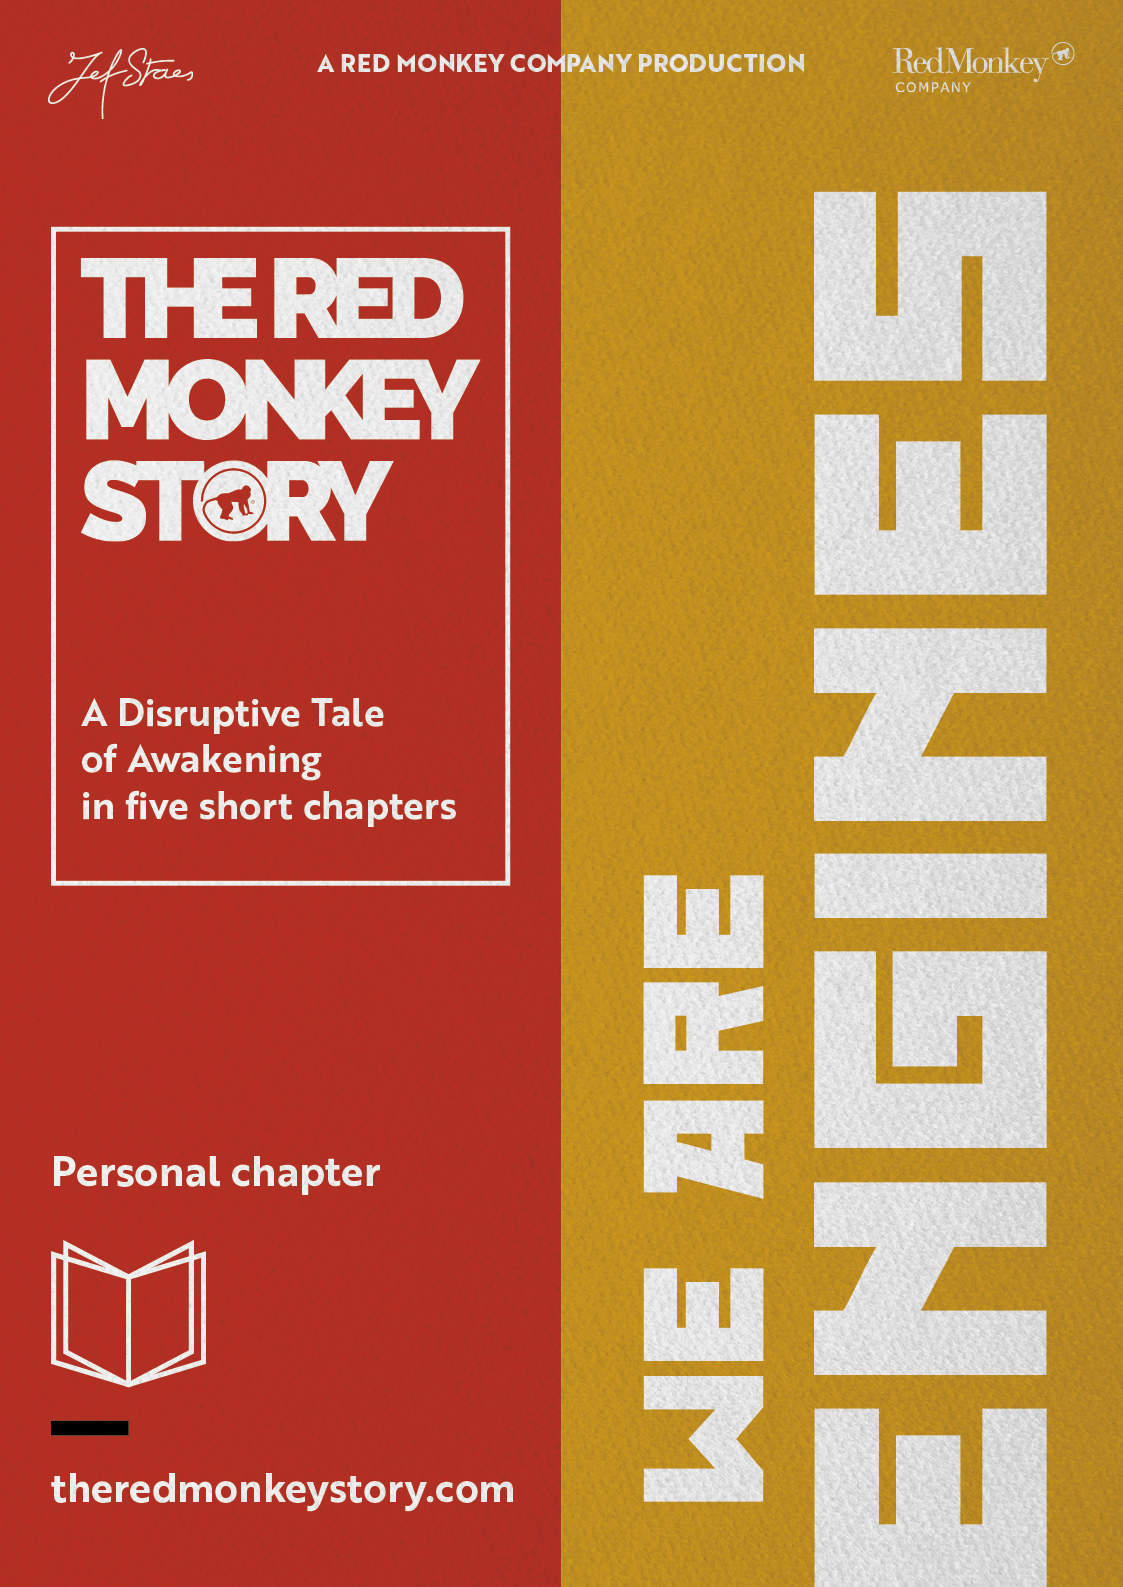 FEN_2019_001_RMS_5Chapters2.png